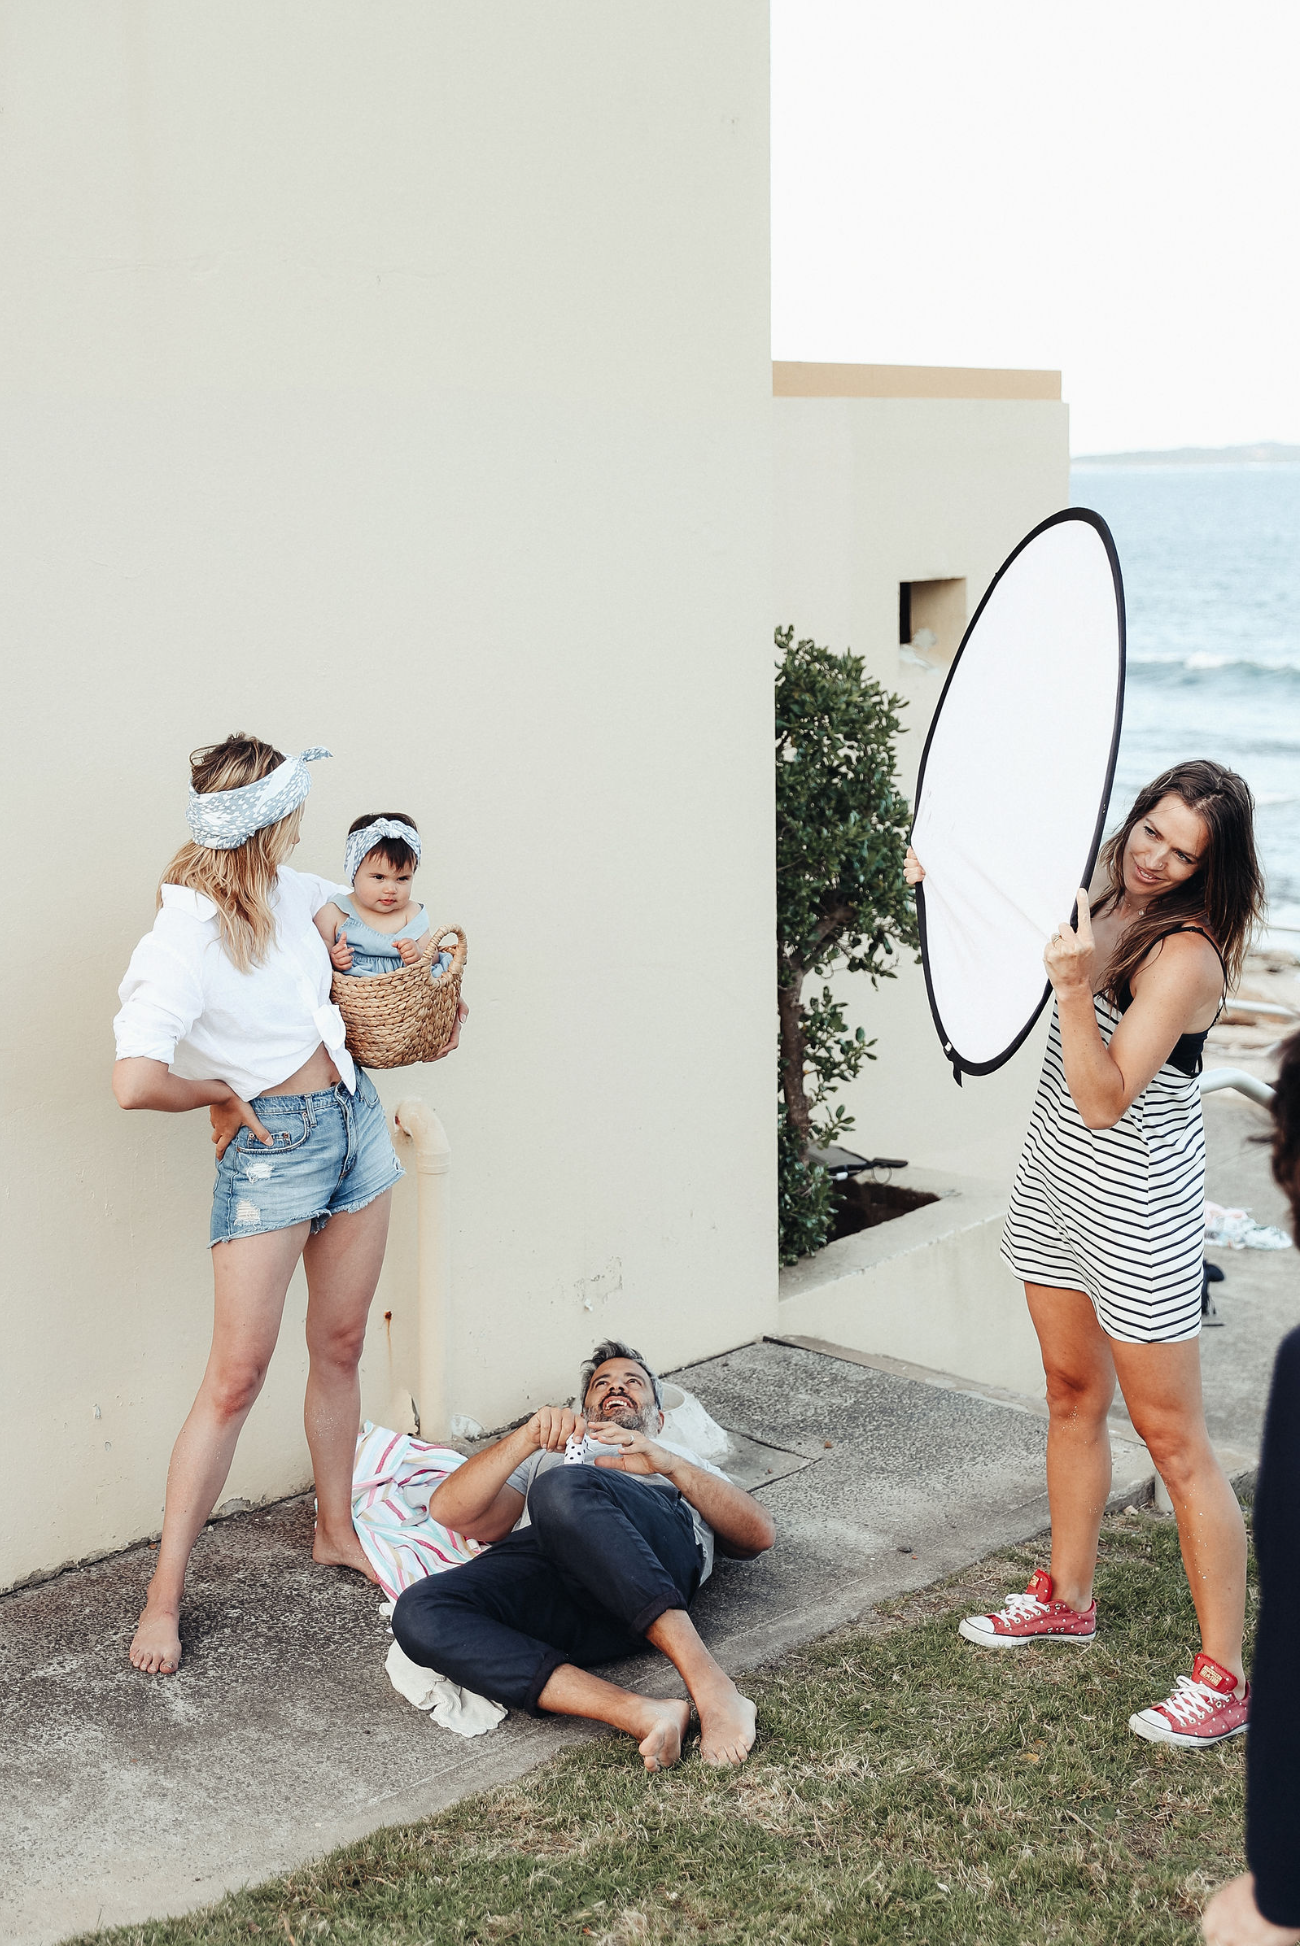 phoebe ghorayeb hey baby campaign behind the scenes 8.png